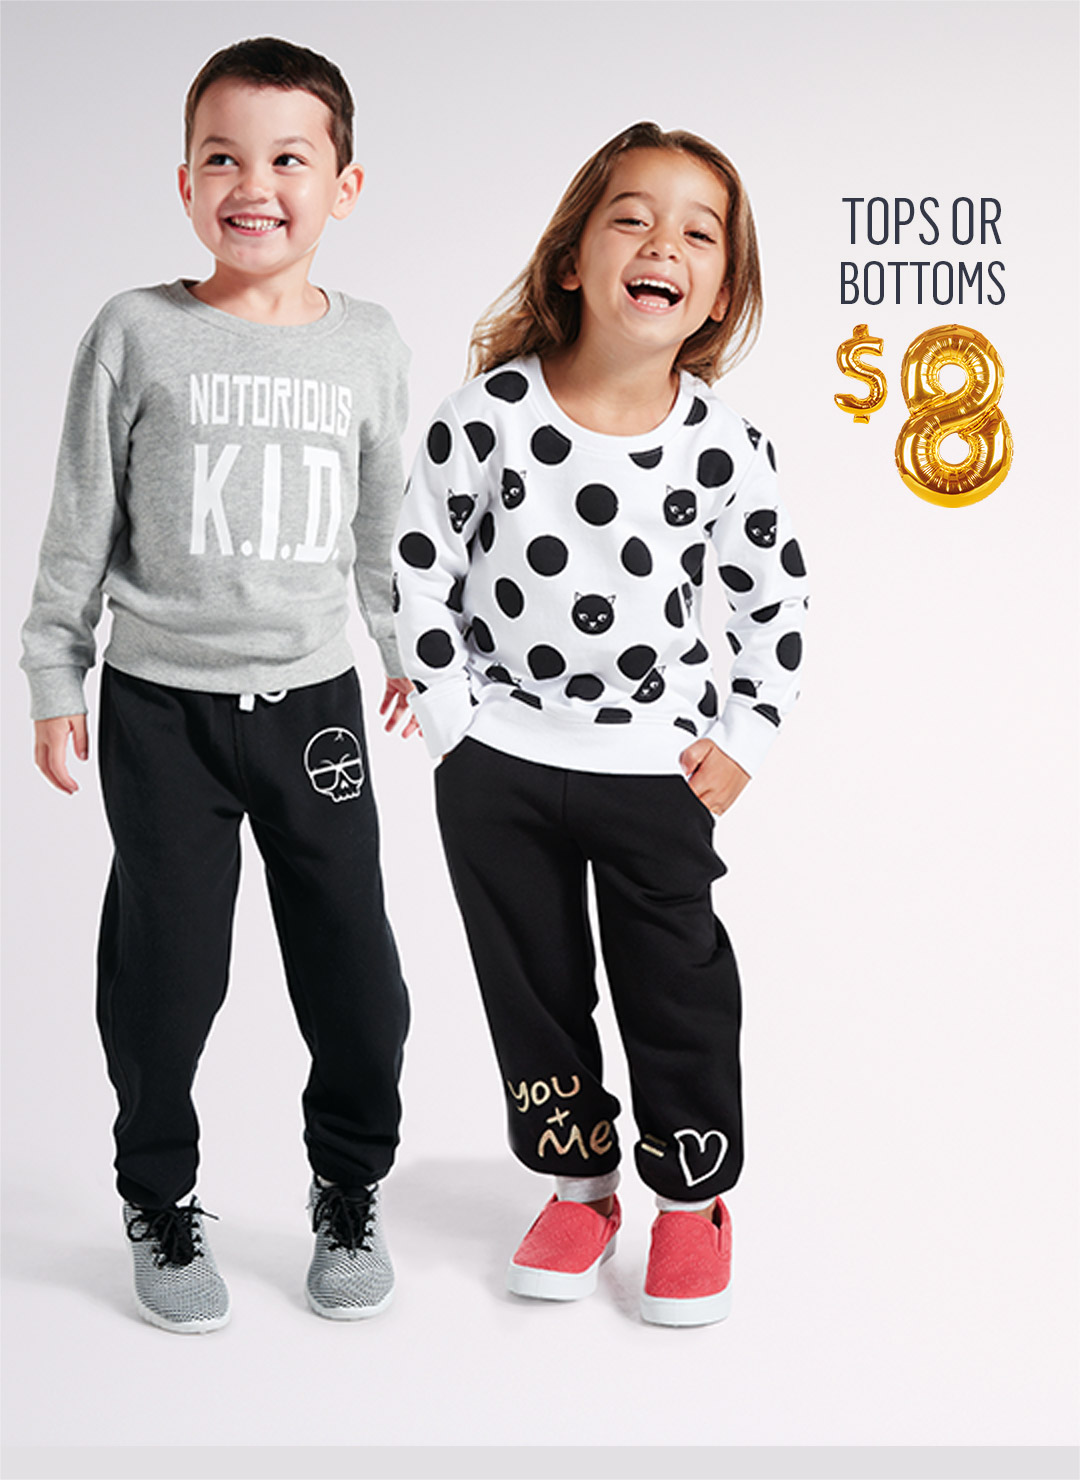 Kids Fashion Tops or Bottoms $8